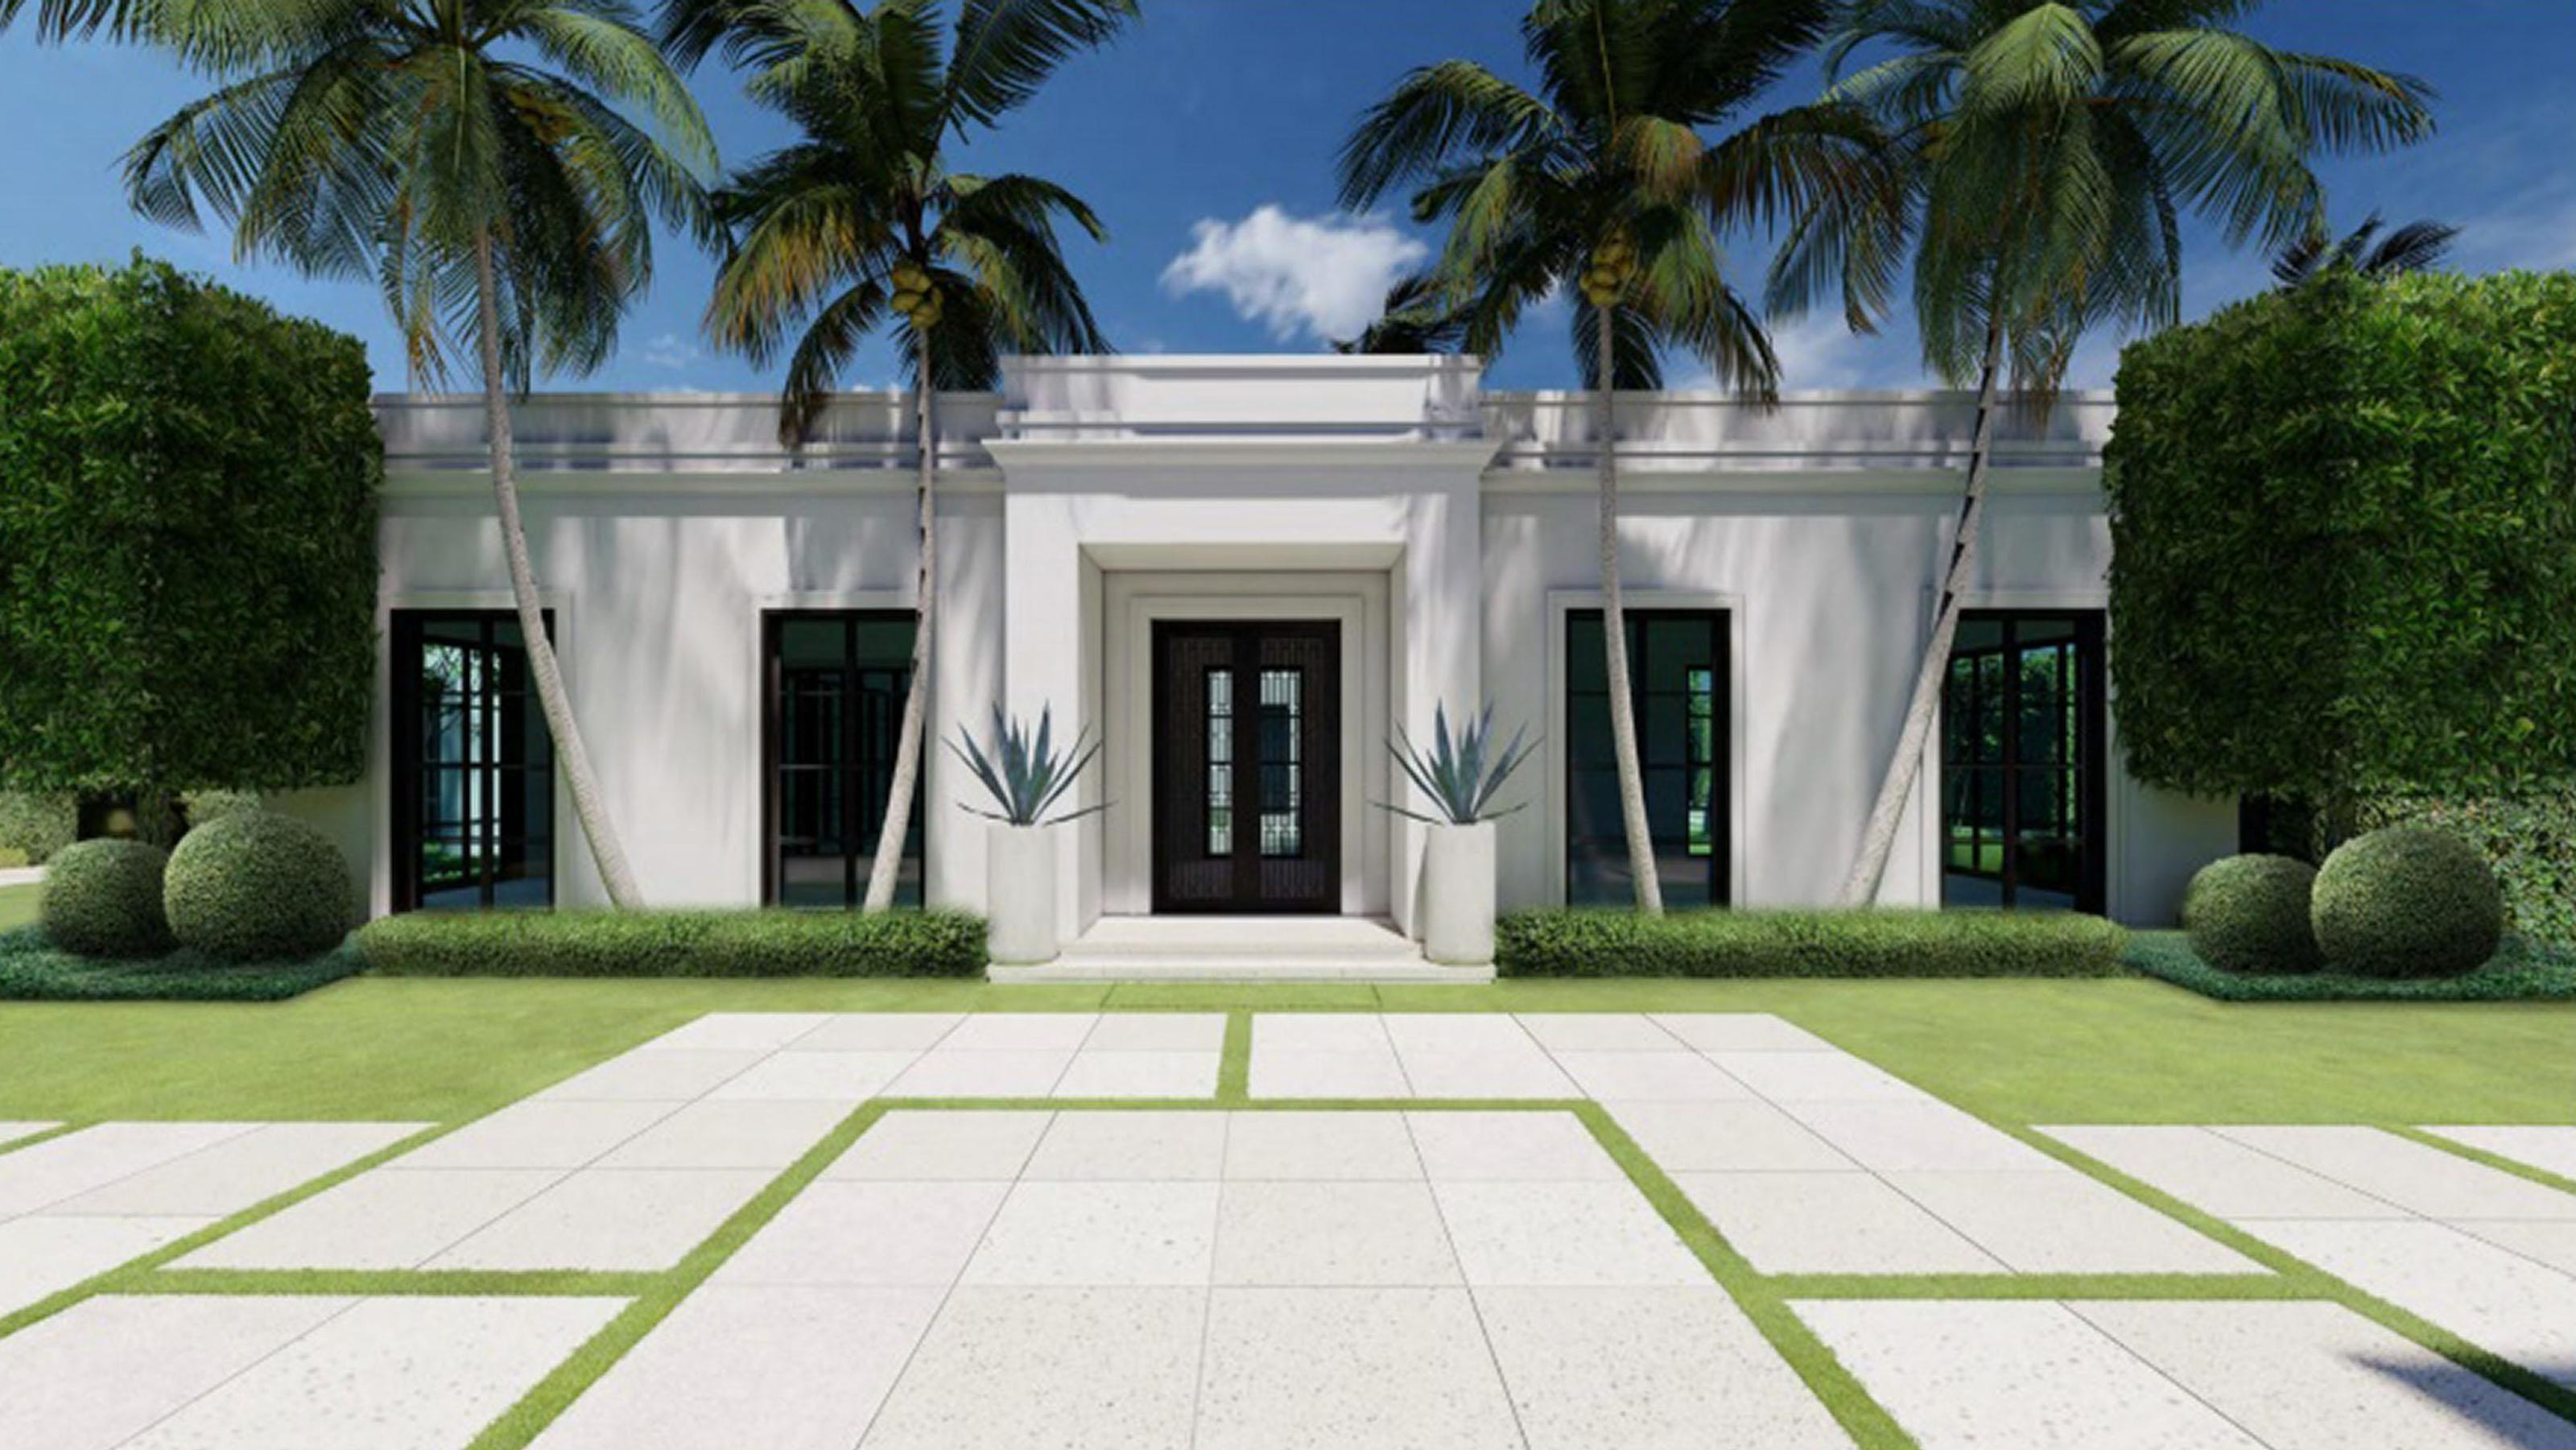 Palm Beach homes: Board OKs clean-lined house with pair of